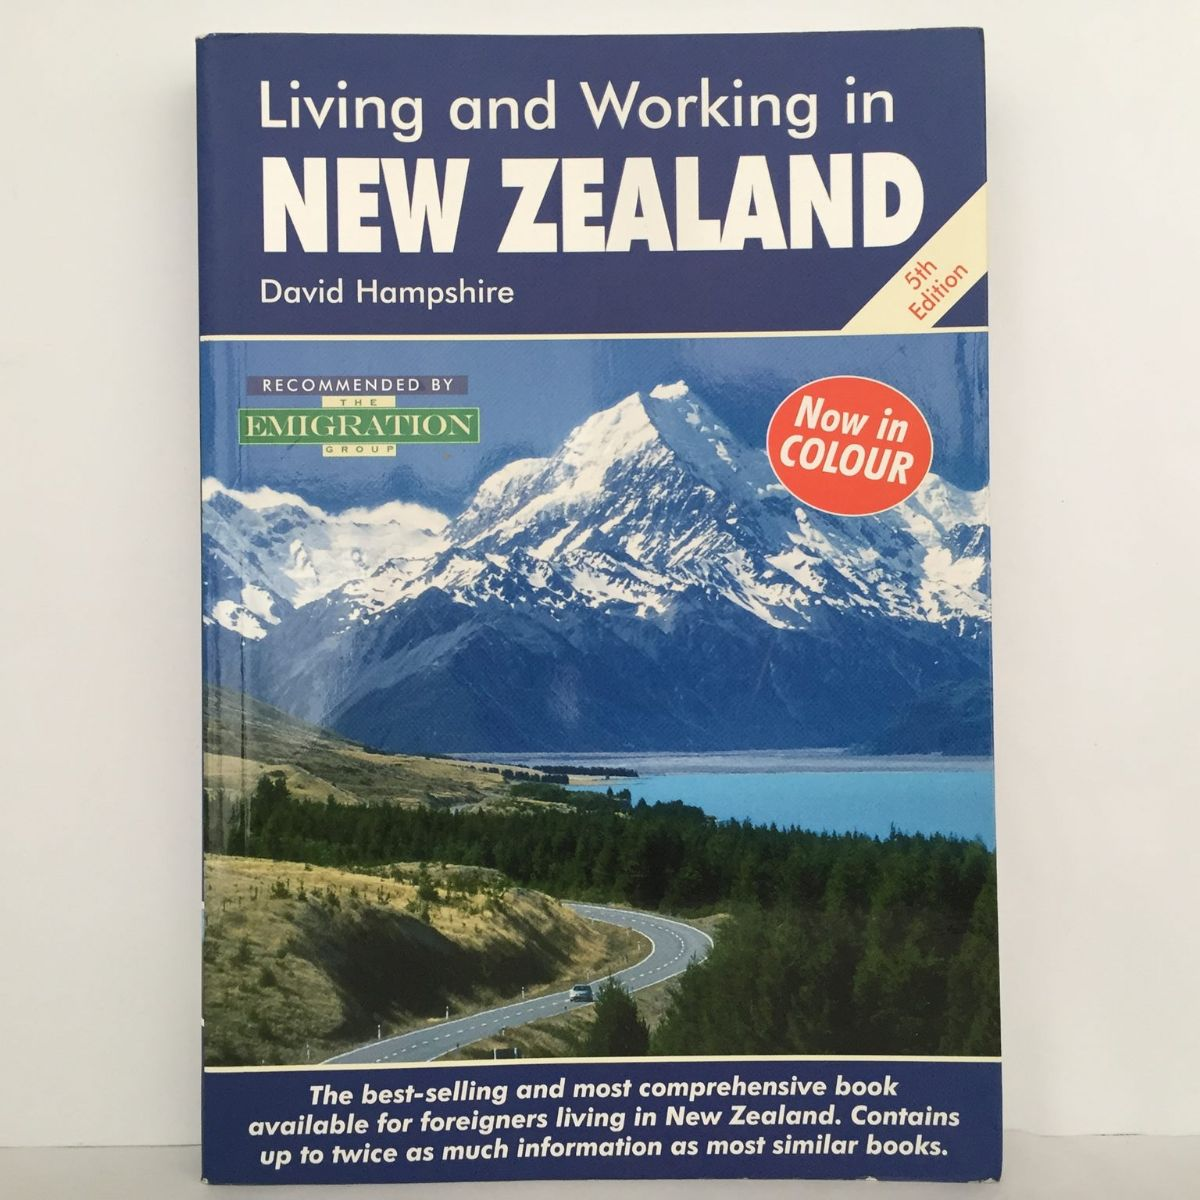 Living and Working in New Zealand : A Survival Handbook